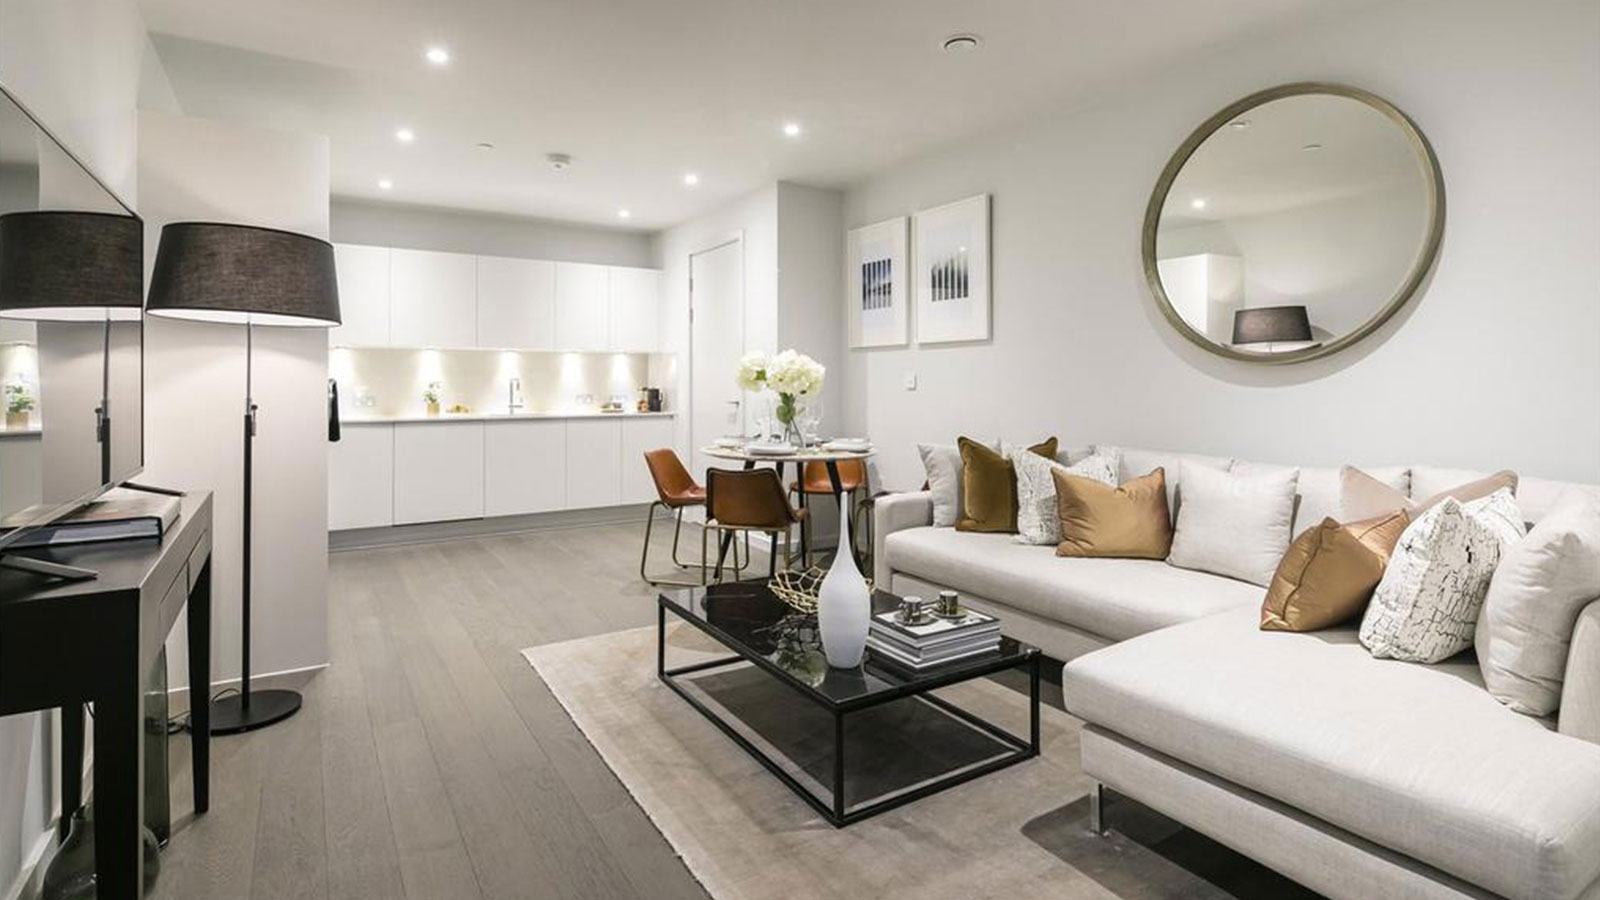 PORCELANOSA Grupo projects: minimalist apartments in the centre of London